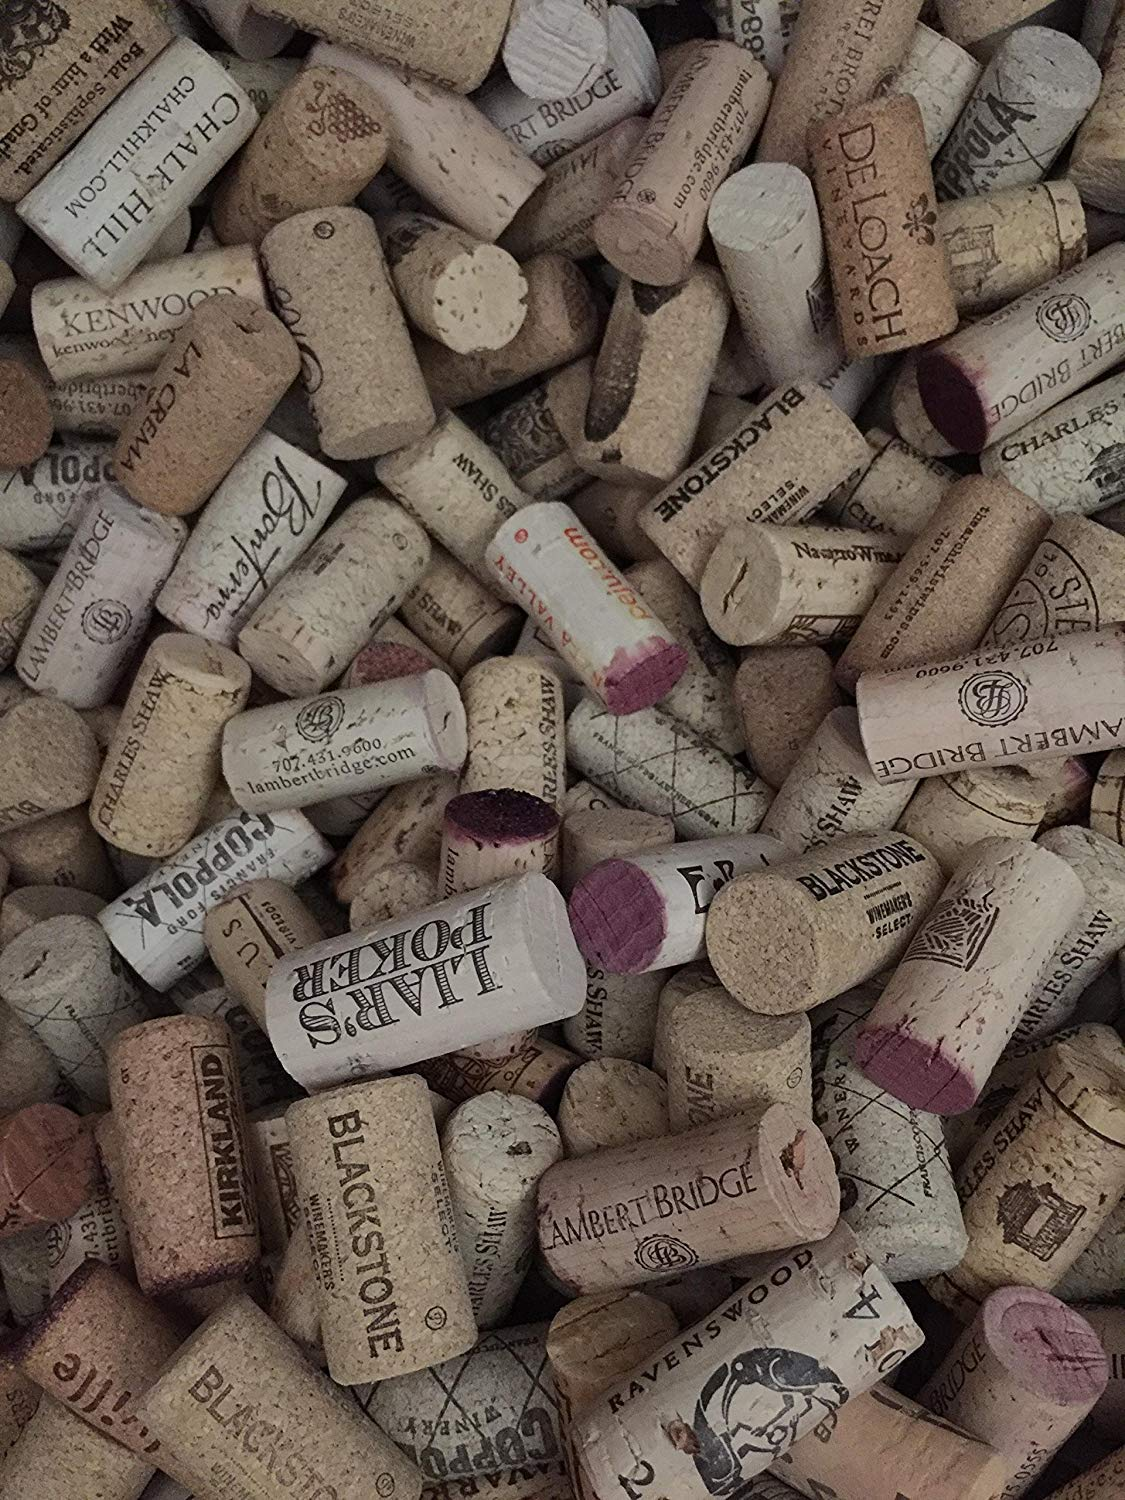 250 Count Premium Recycled Used Corks in Bulk, Natural Wine Corks From Around the Us, Best Variety, Includes Crafts Activity Sheet and Cork Cutting Instructions (250 Count)